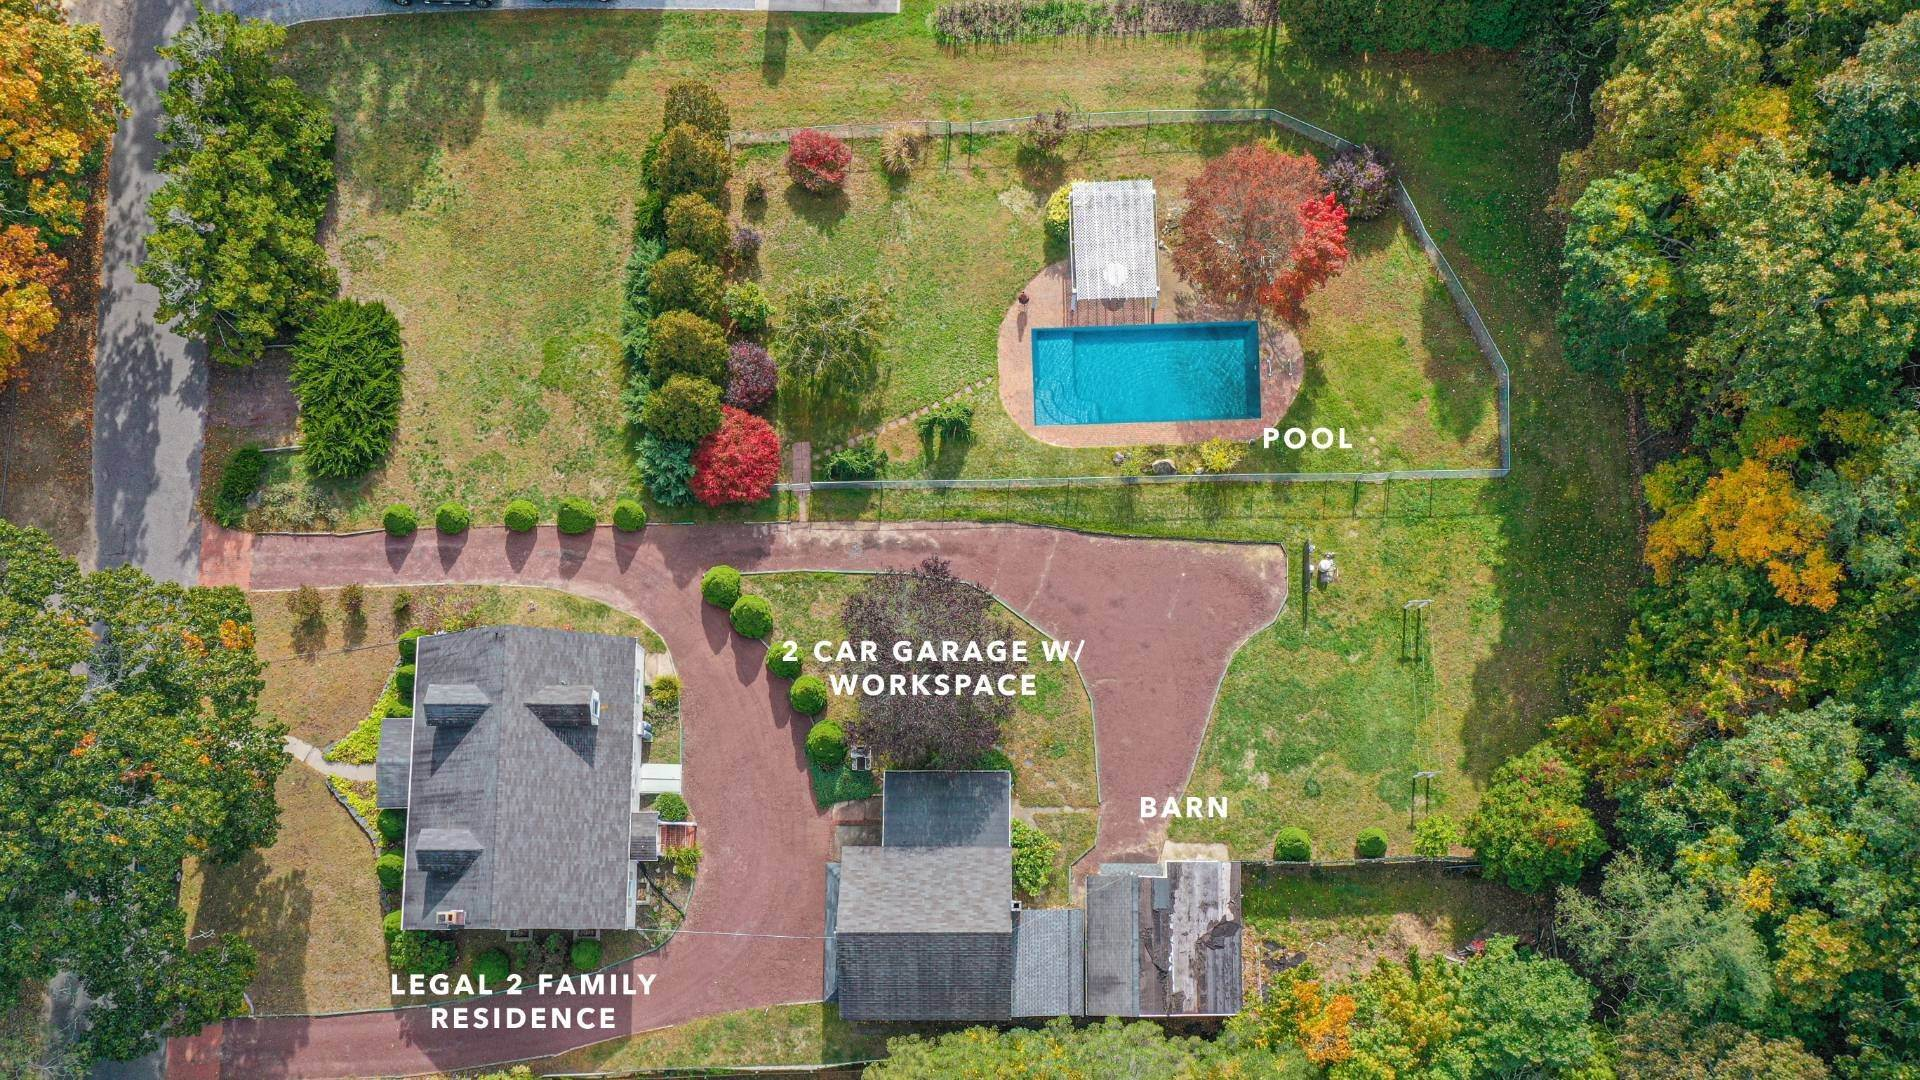 Single Family Home for Sale at Sag Harbor Amazing Opportunity - Legal Two Family Home 40 Carroll Street, Sag Harbor, NY 11963